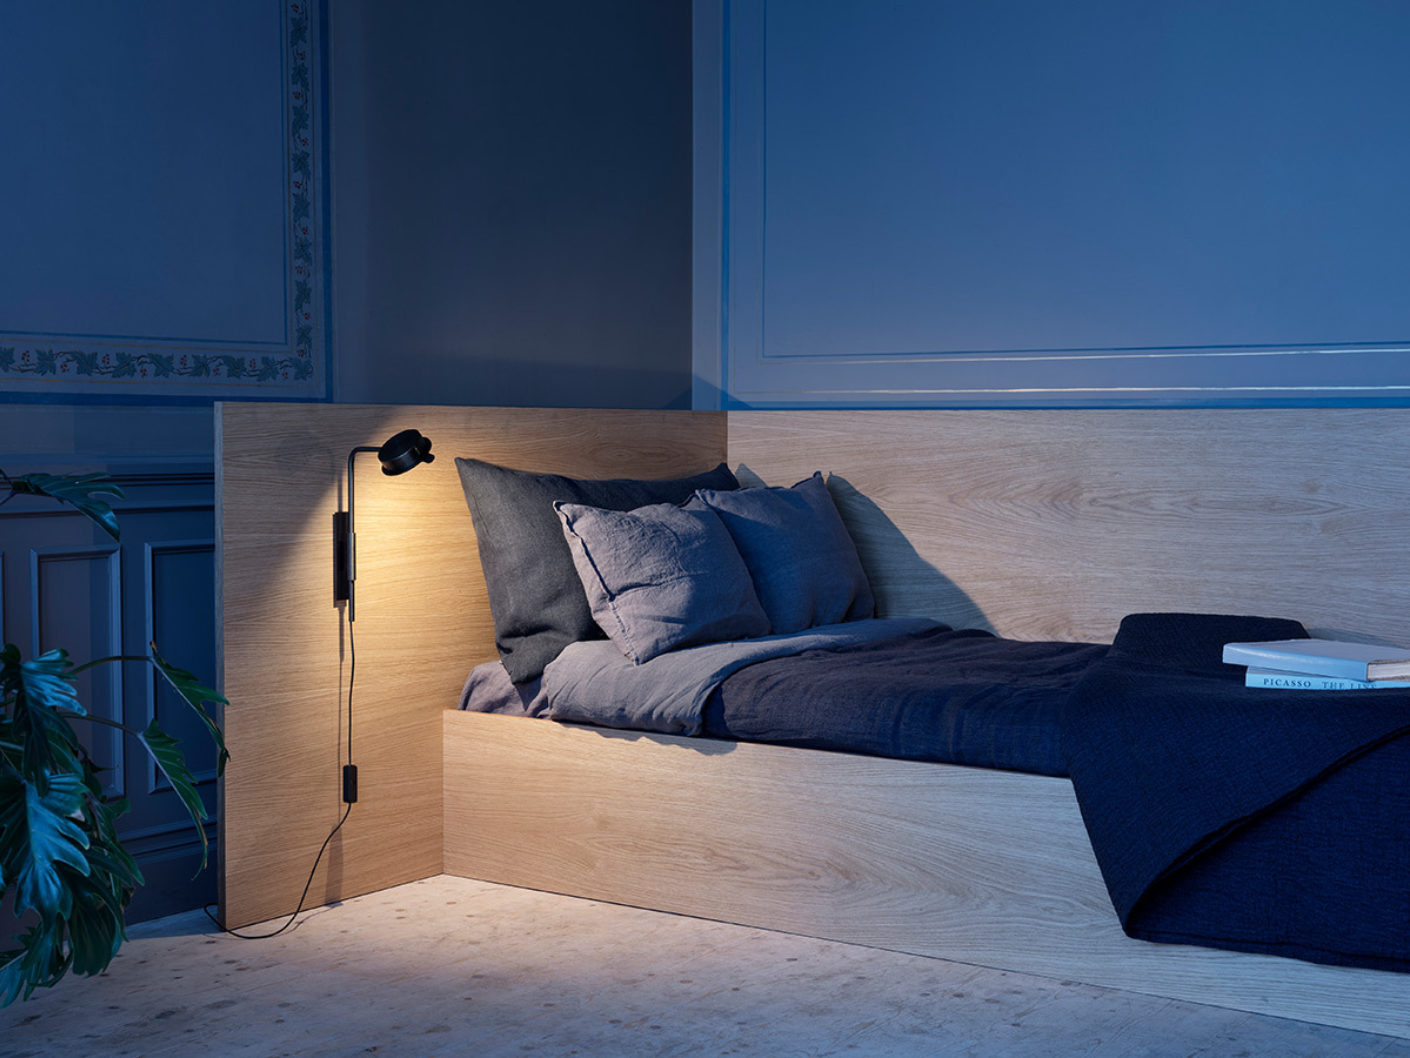 Wall lamp w102 by David Chipperfield